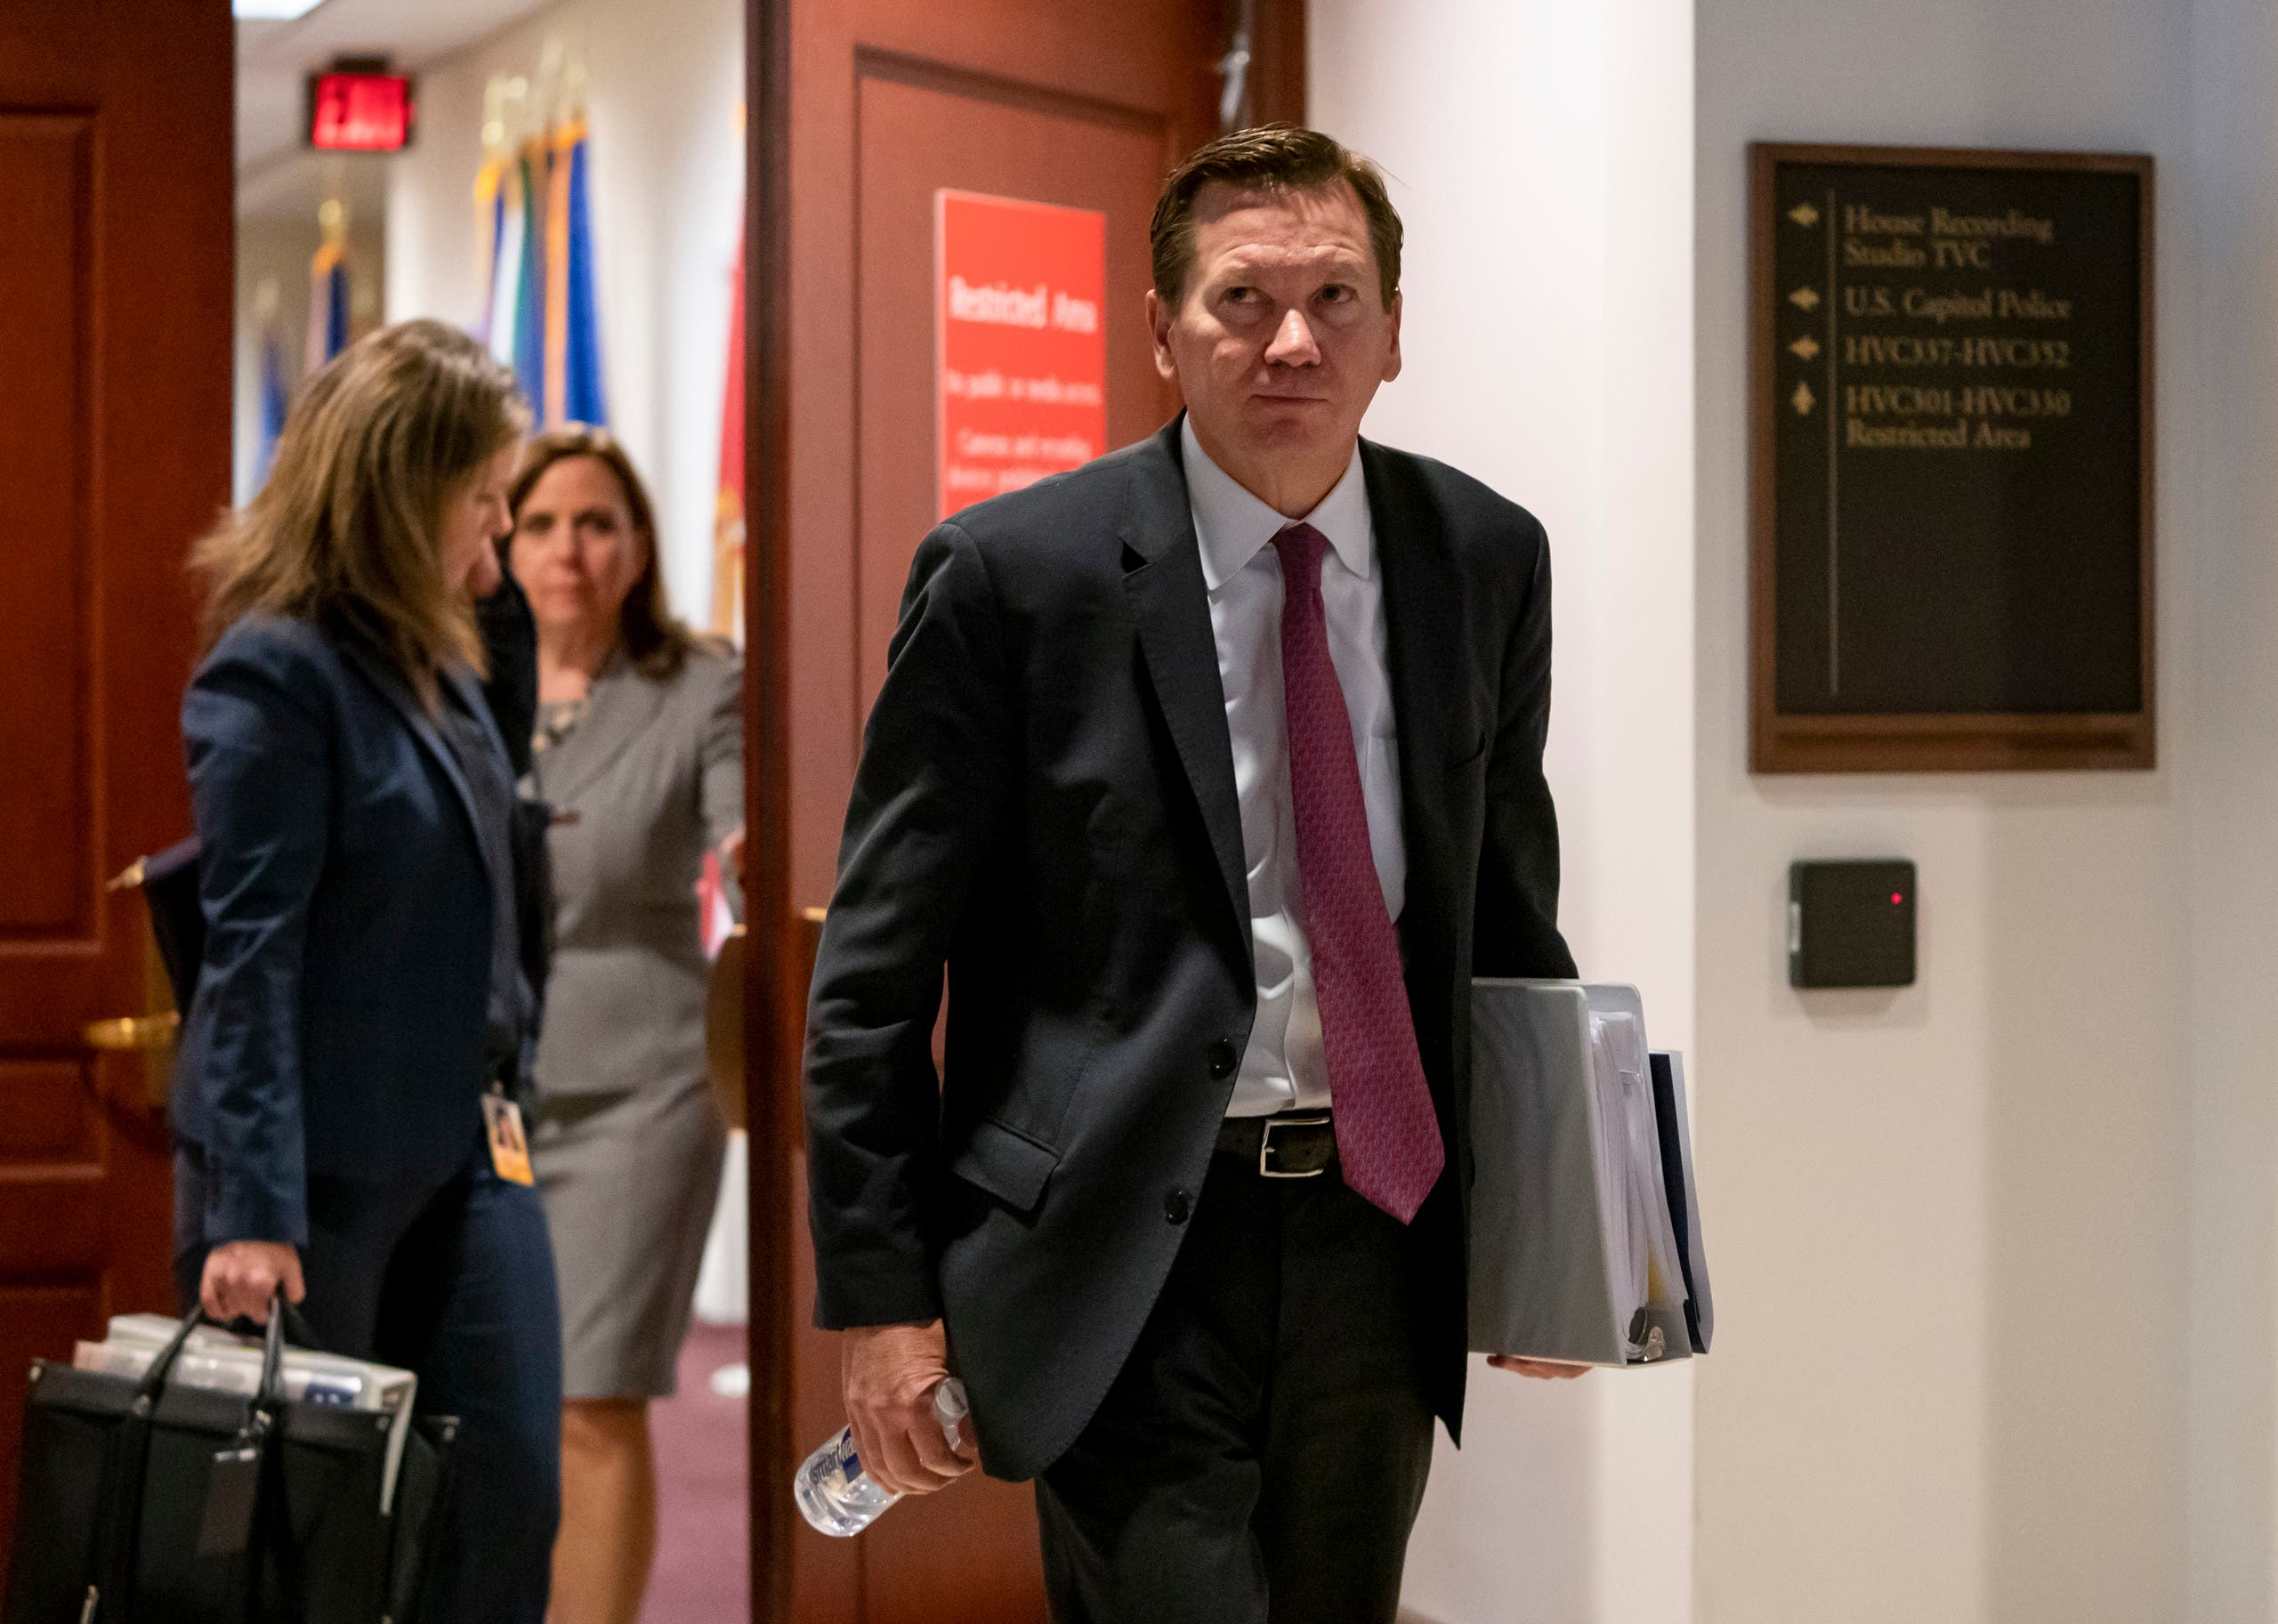 Michael Atkinson leaves a secure area in the Capitol after a day of questions about the whistleblower complaint that exposed a July phone call the Trump had with Ukrainian President Volodymyr Zelenskiy, on October 4, 2019. (AP)